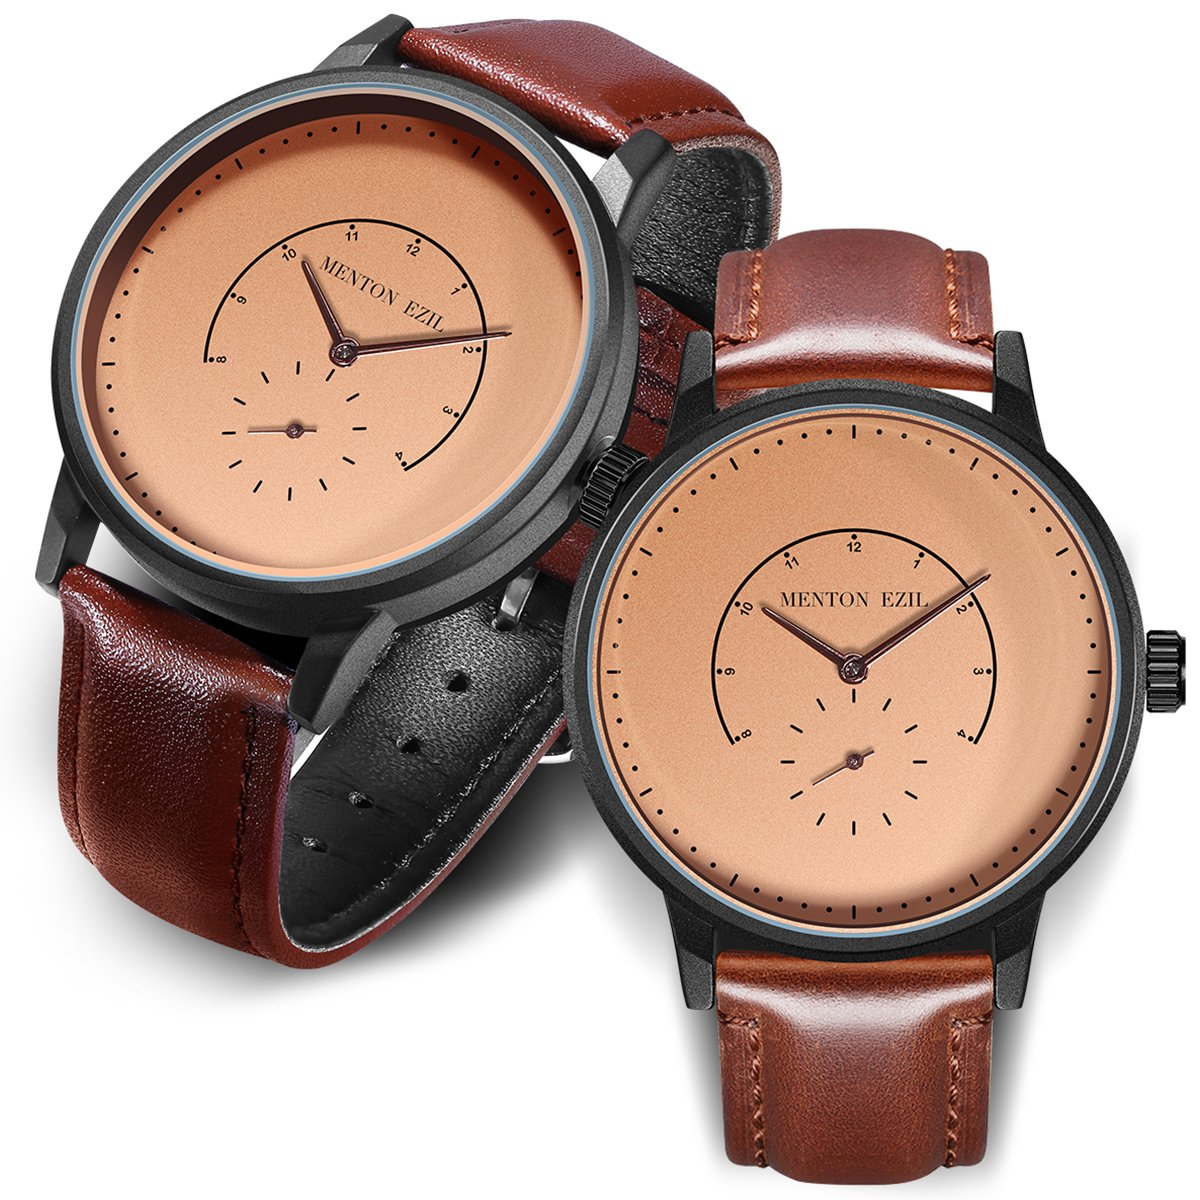 Wooden Couple Watch for Women Men 30M Waterproof Classic Quartz Analog Wrist Watches with Brown Leather (Dark Brown)